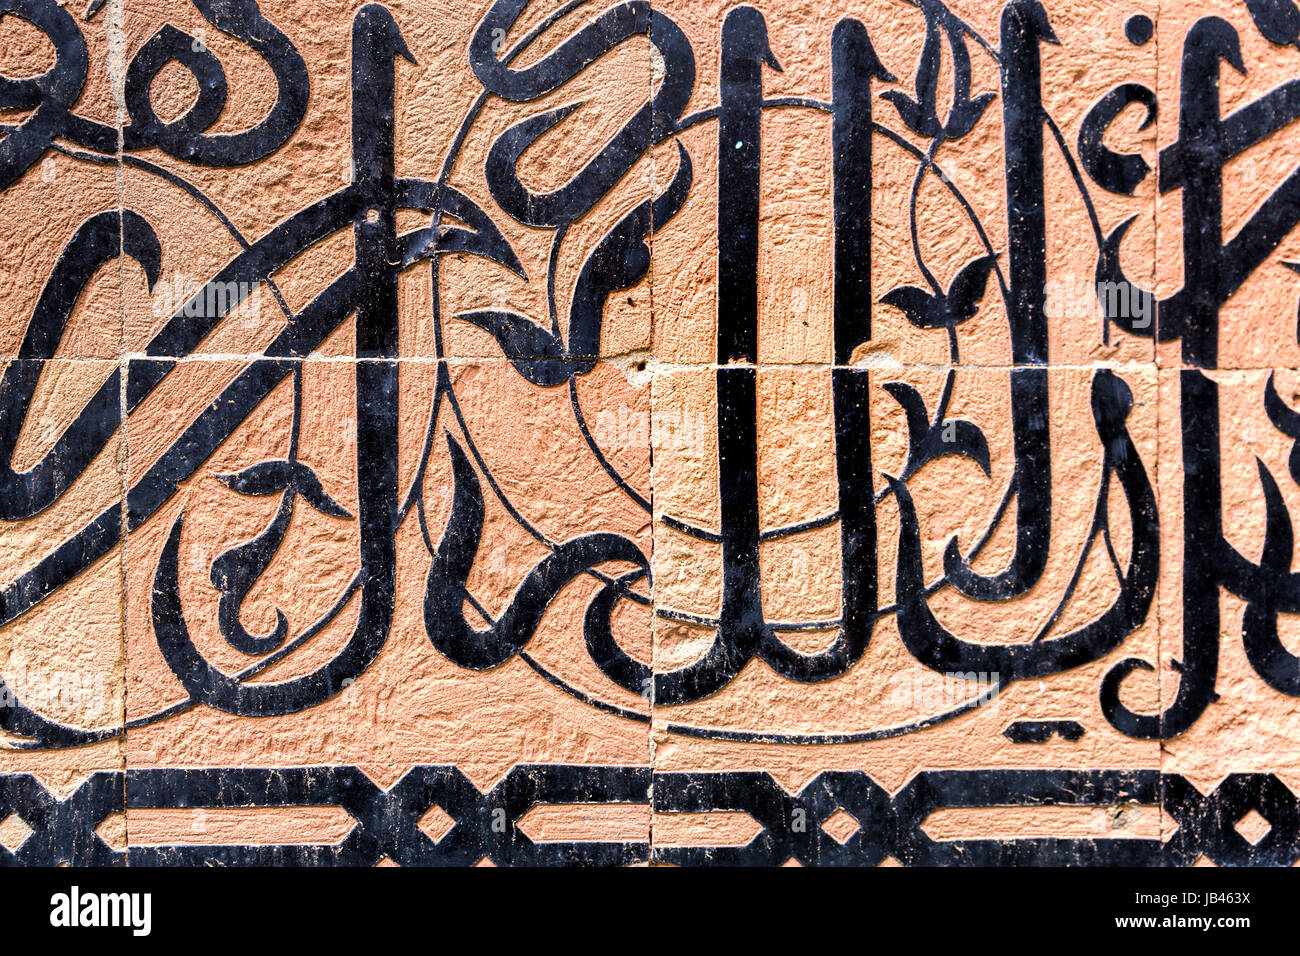 Deko Marokko Arabische Kalligrafie Marokko Stock Photo 144536782 Alamy